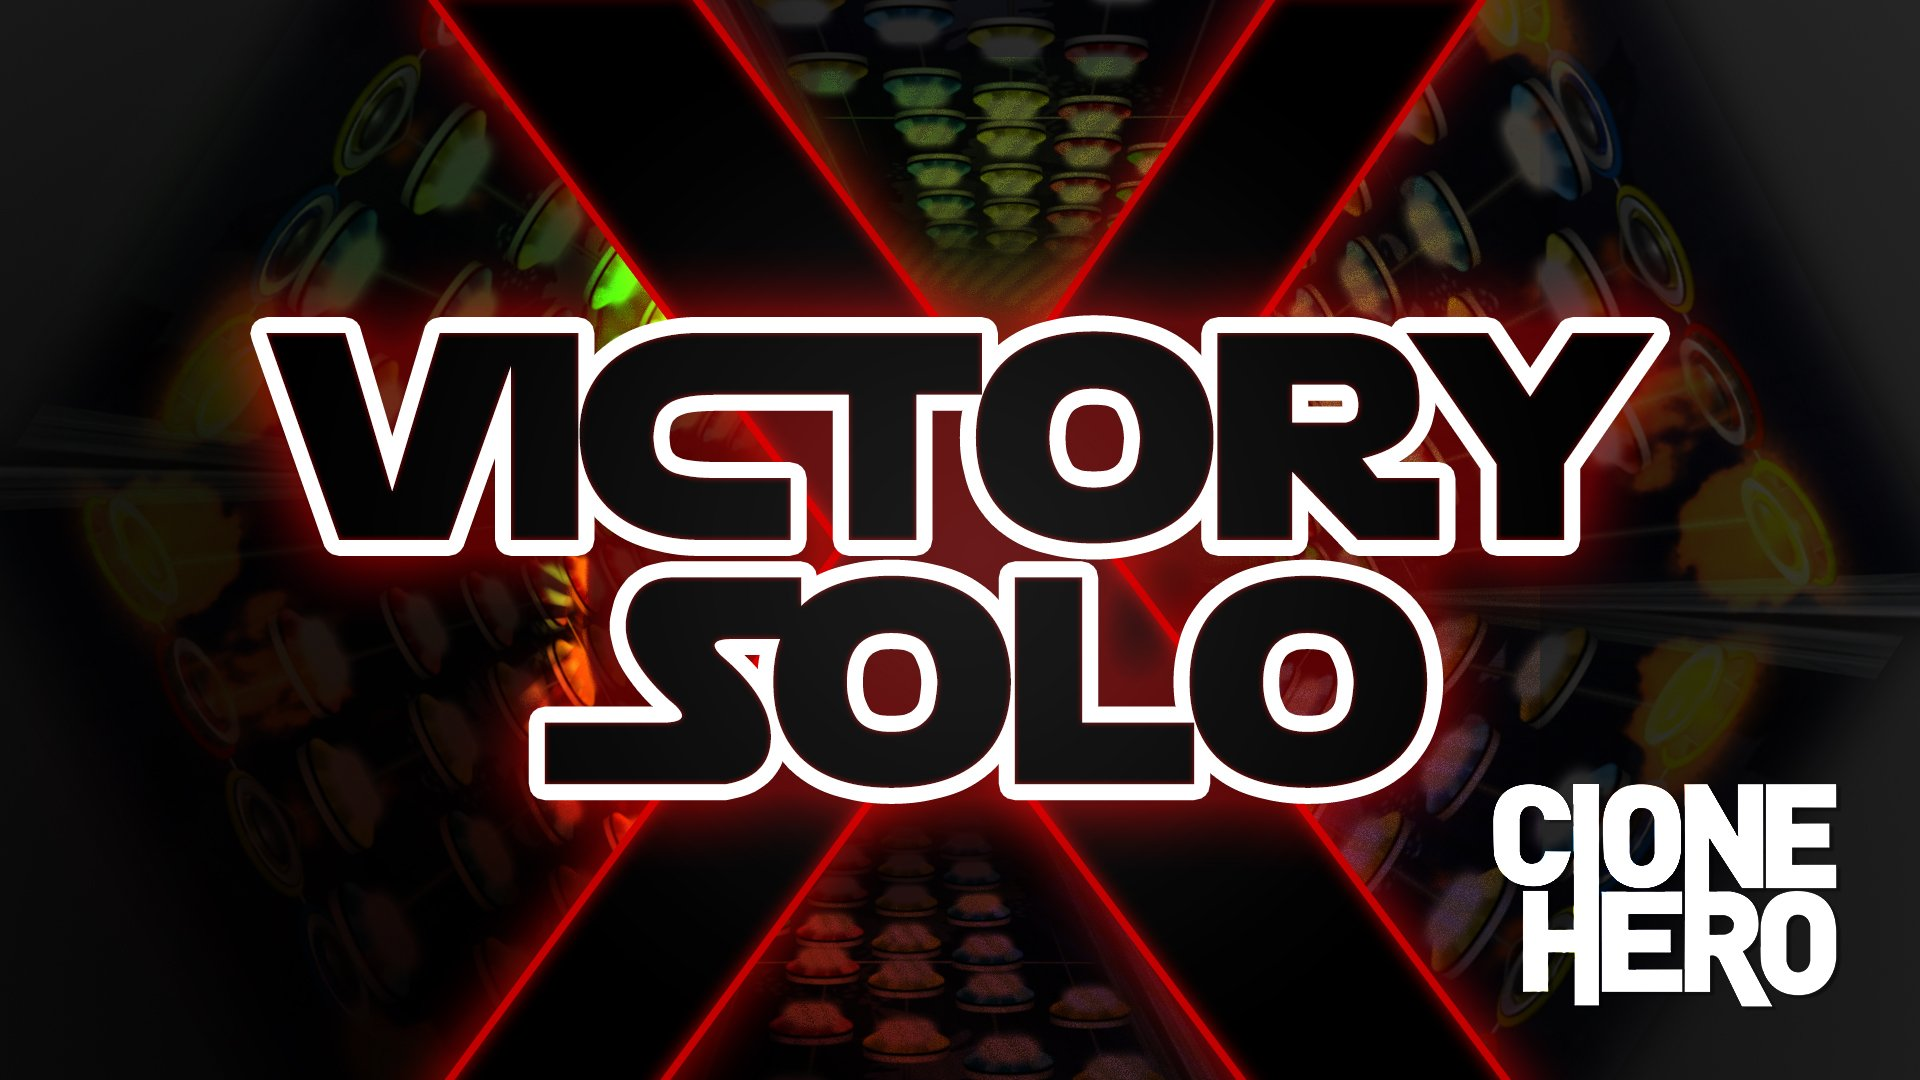 Victory Solo X on Clone Hero!